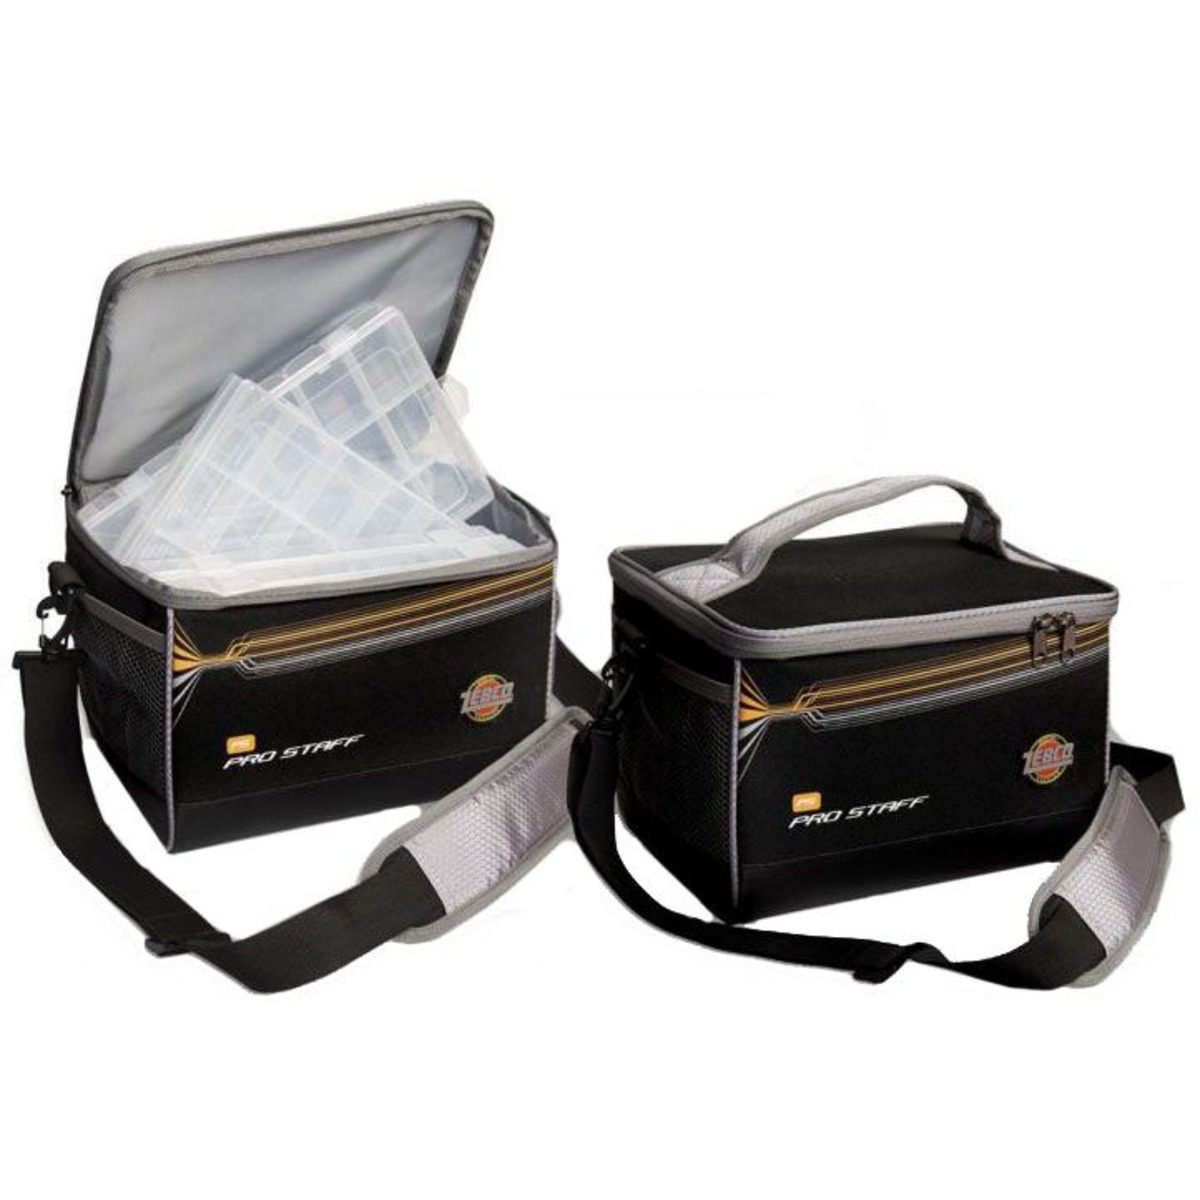 Zebco Pro Staff All In Carry All - 29x22x21 cm